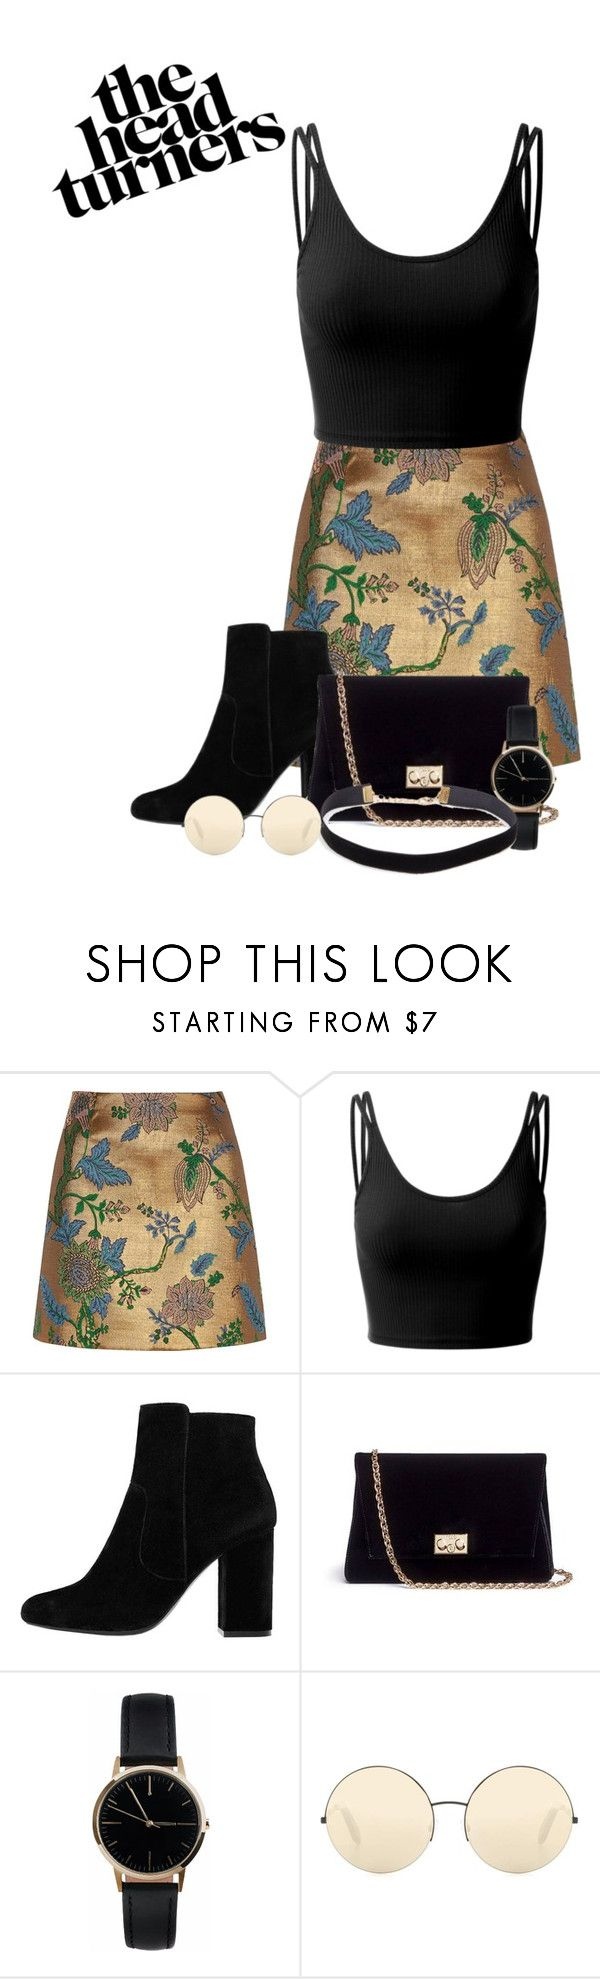 """Head Turners"" by wolf-teen ❤ liked on Polyvore featuring River Island, Doublju, MANGO, Rodo, Freedom To Exist and Victoria Beckham"